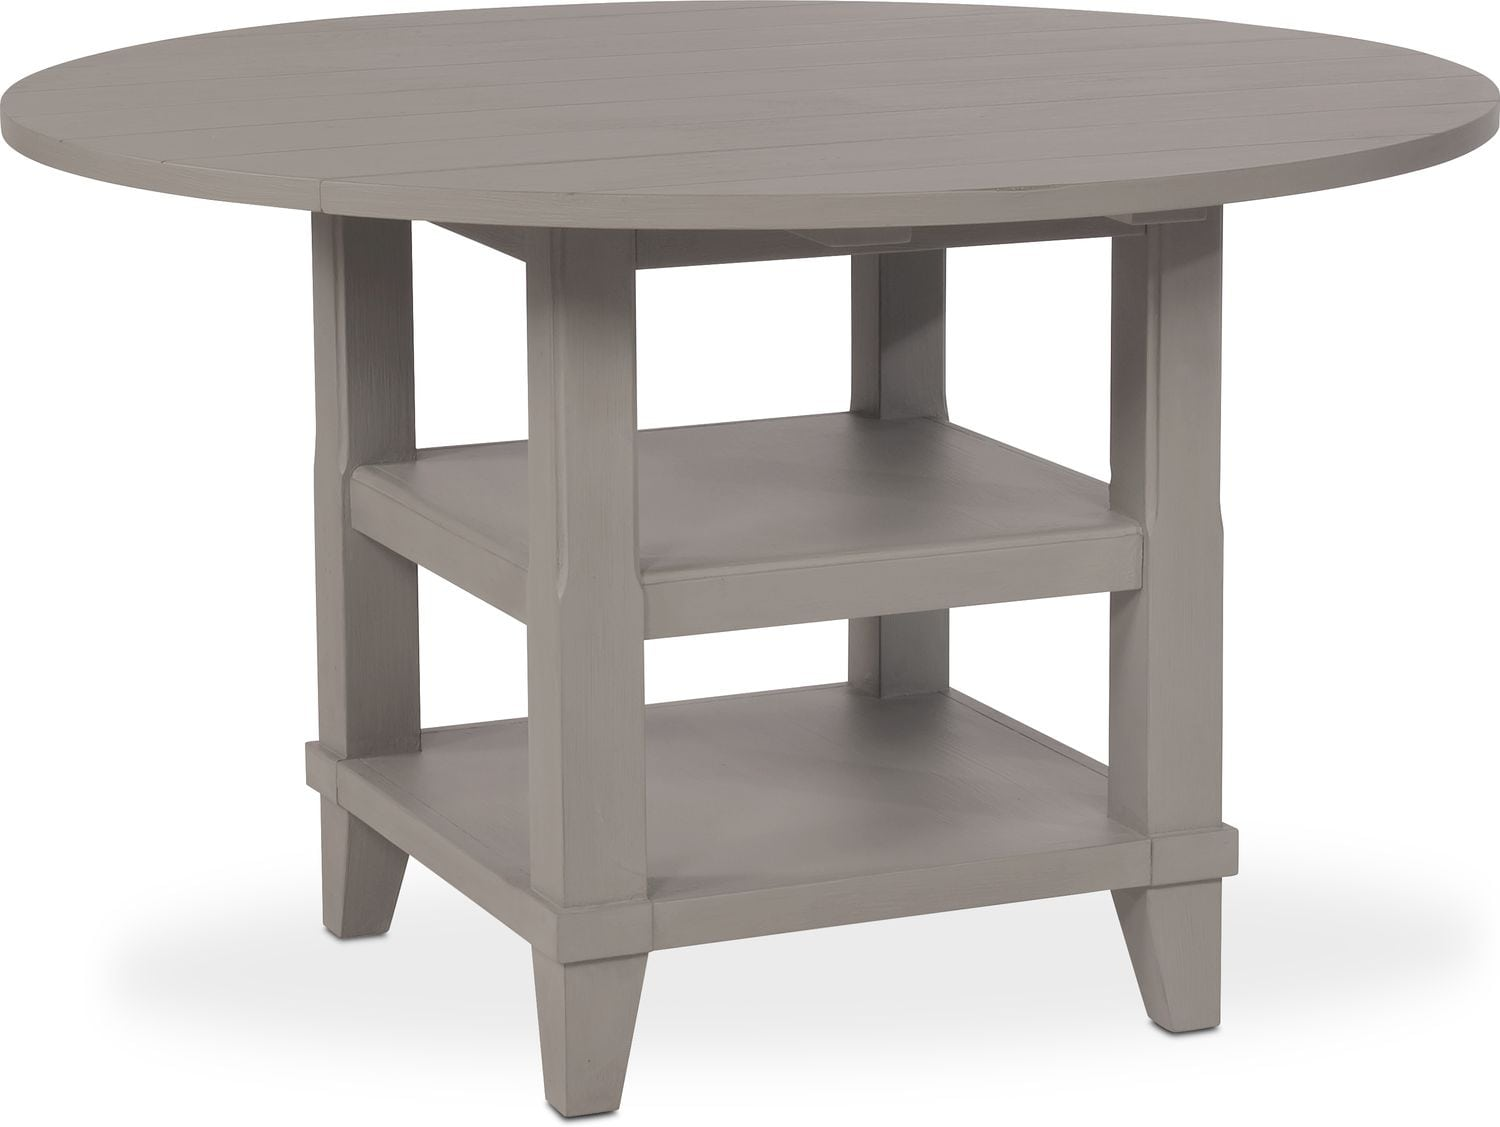 New Haven Round Drop Leaf Dining Table Gray American